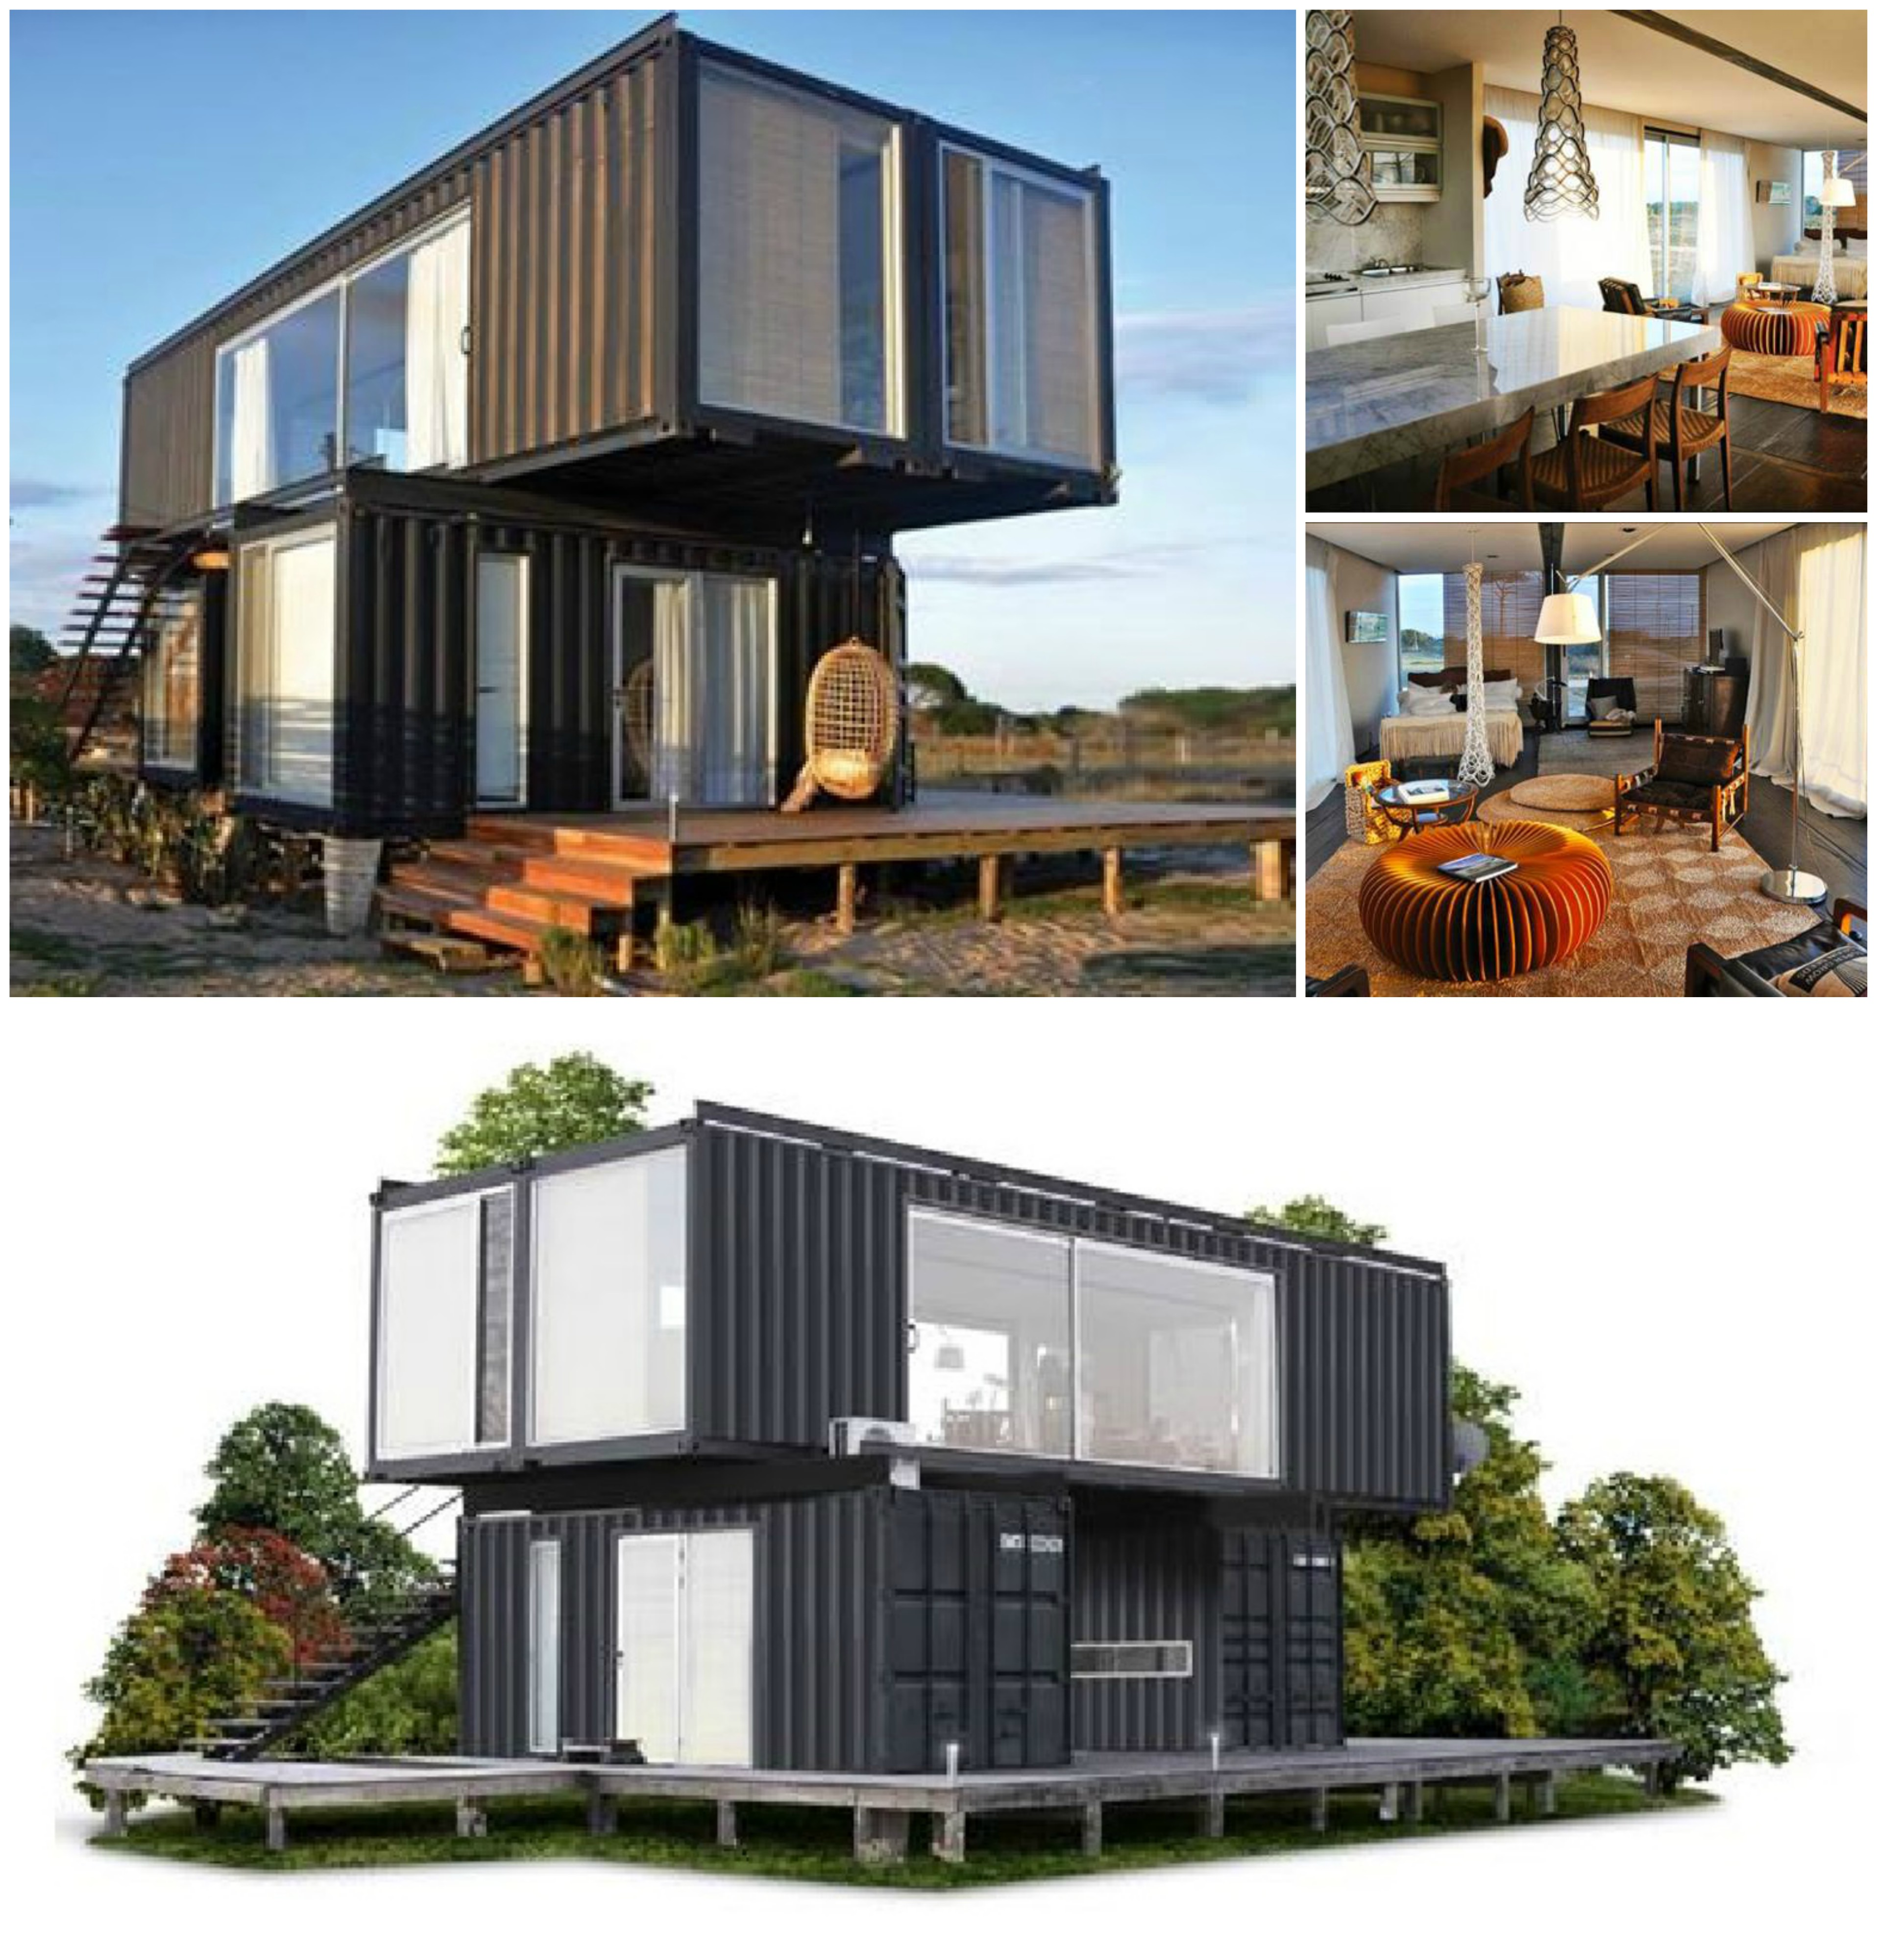 Best Kitchen Gallery: Container Homes In Los Angeles Home Furniture Design of Container Beach Homes on rachelxblog.com